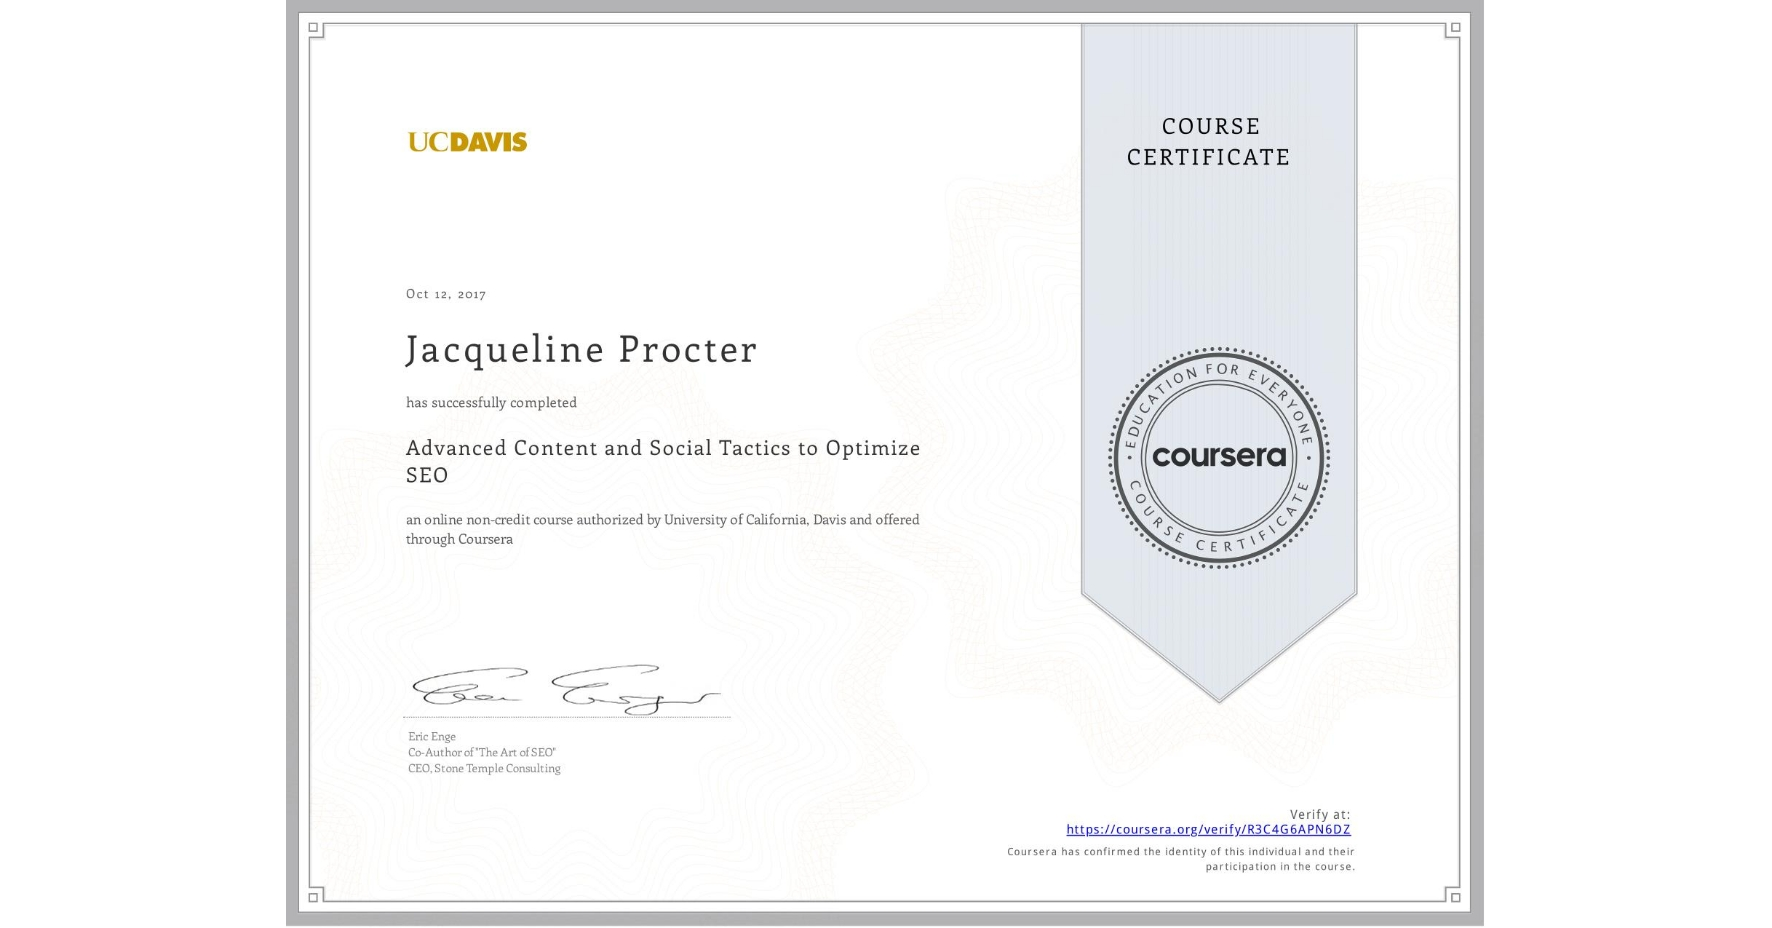 View certificate for Jacqueline Procter, Advanced Content and Social Tactics to Optimize SEO, an online non-credit course authorized by University of California, Davis and offered through Coursera